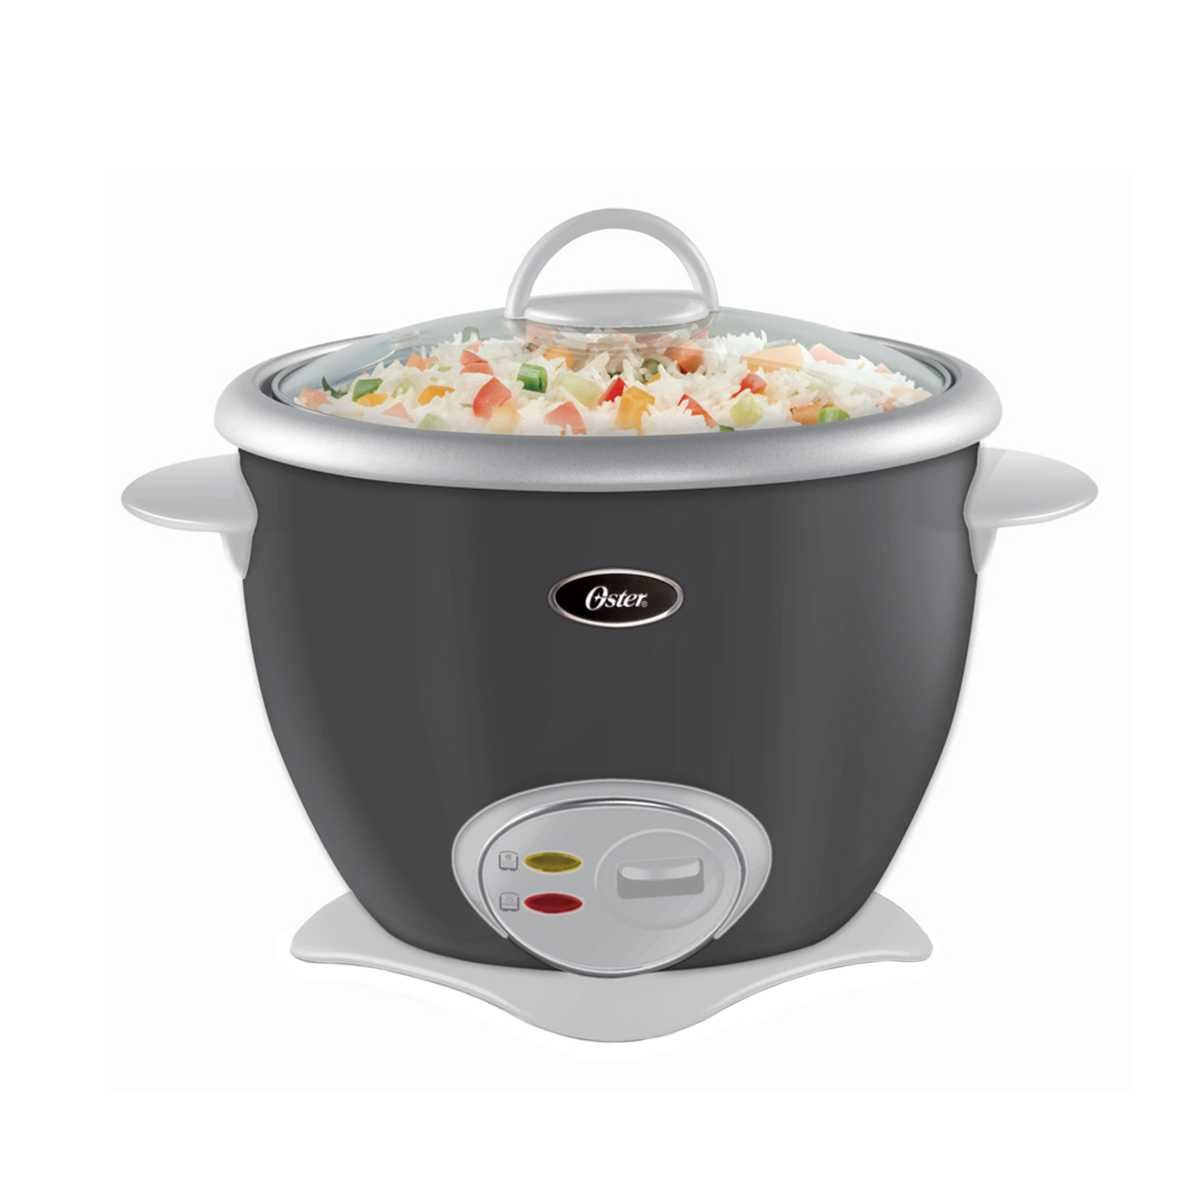 Picture of Oster Rice Cooker CKSTRC4728-049